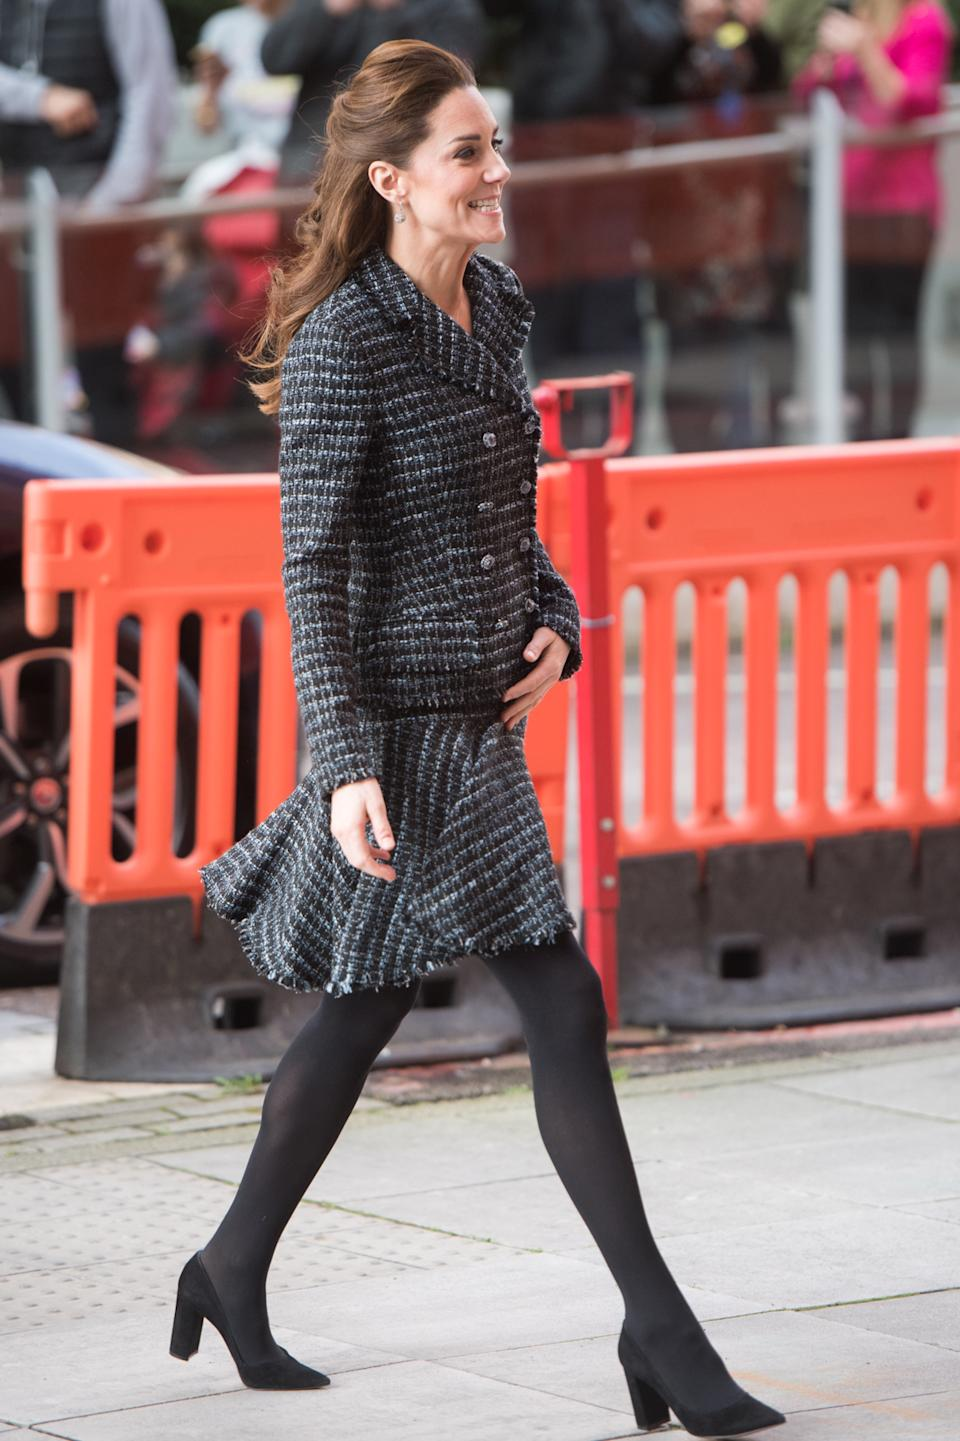 LONDON, ENGLAND - JANUARY 28: Catherine, Duchess of Cambridge joins a workshop run by the National Portrait Gallery's Hospital Programme at Evelina Children's Hospital on January 28, 2020 in London, England. HRH is Patron of Evelina London Children's Hospital and Patron of the National Portrait Gallery. (Photo by Samir Hussein/WireImage)